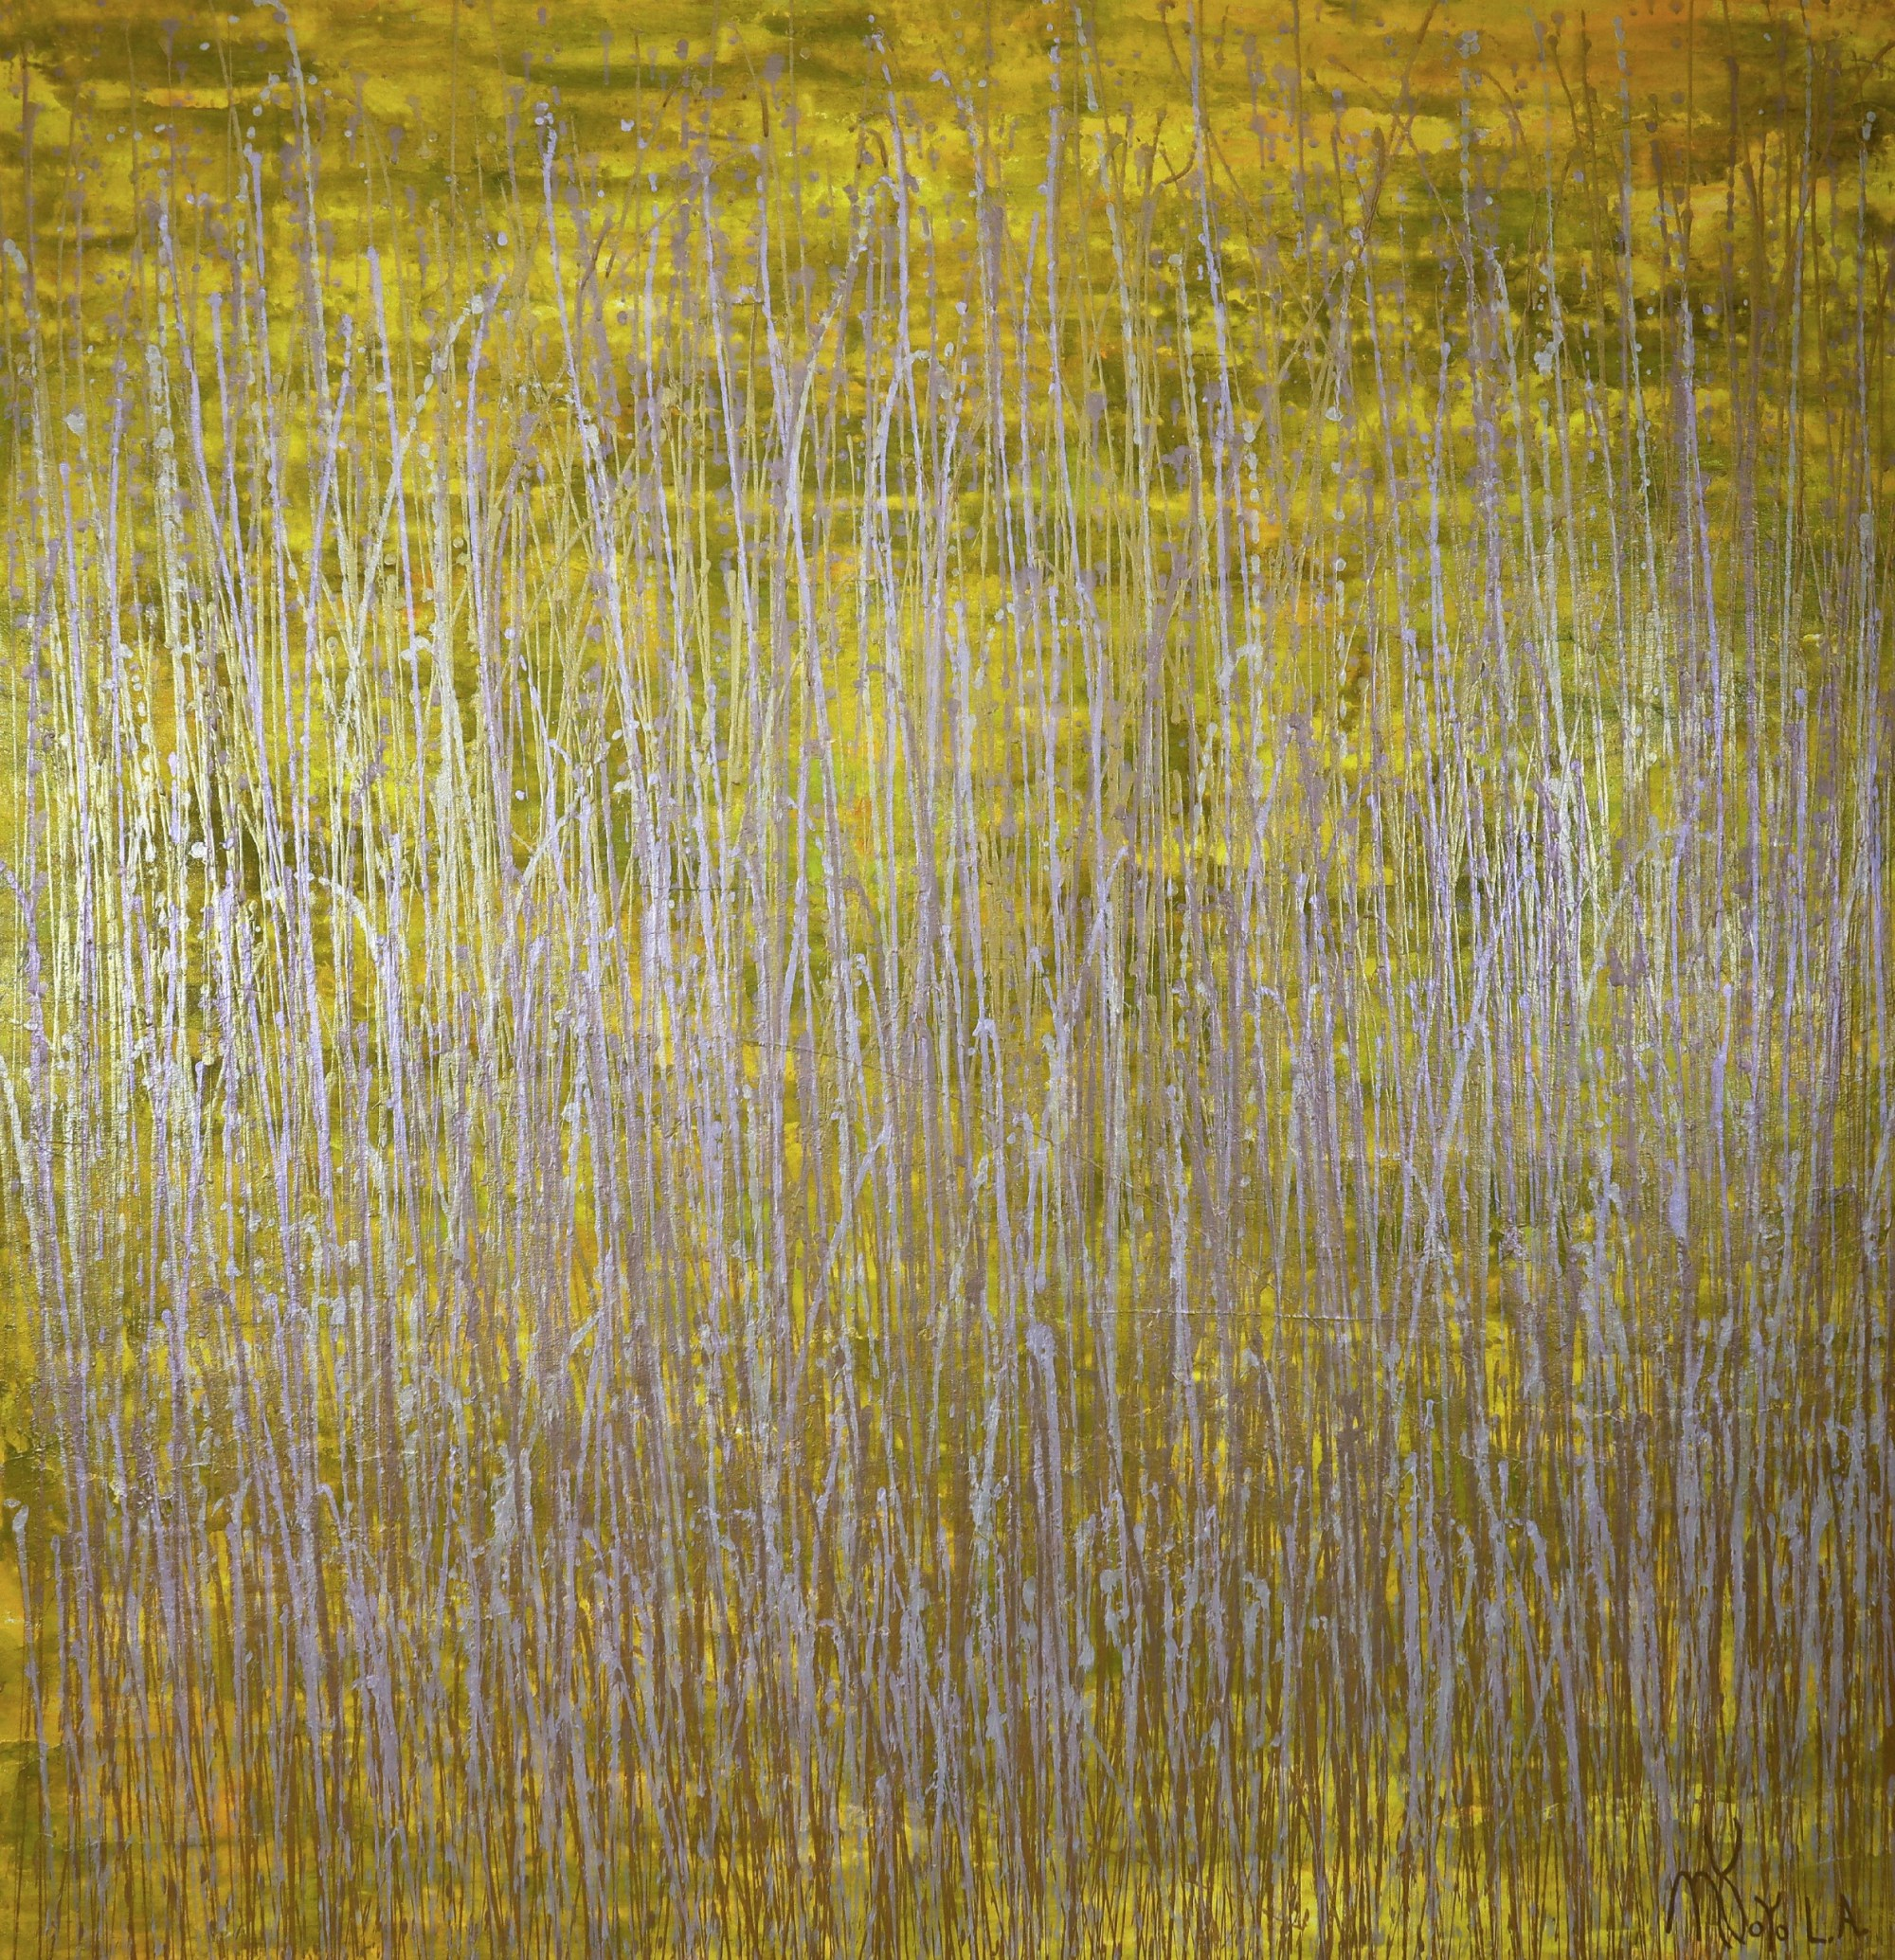 Full Canvas View / Somewhere in Between (Yellow and Gold) (2021) / Artist: Nestor Toro